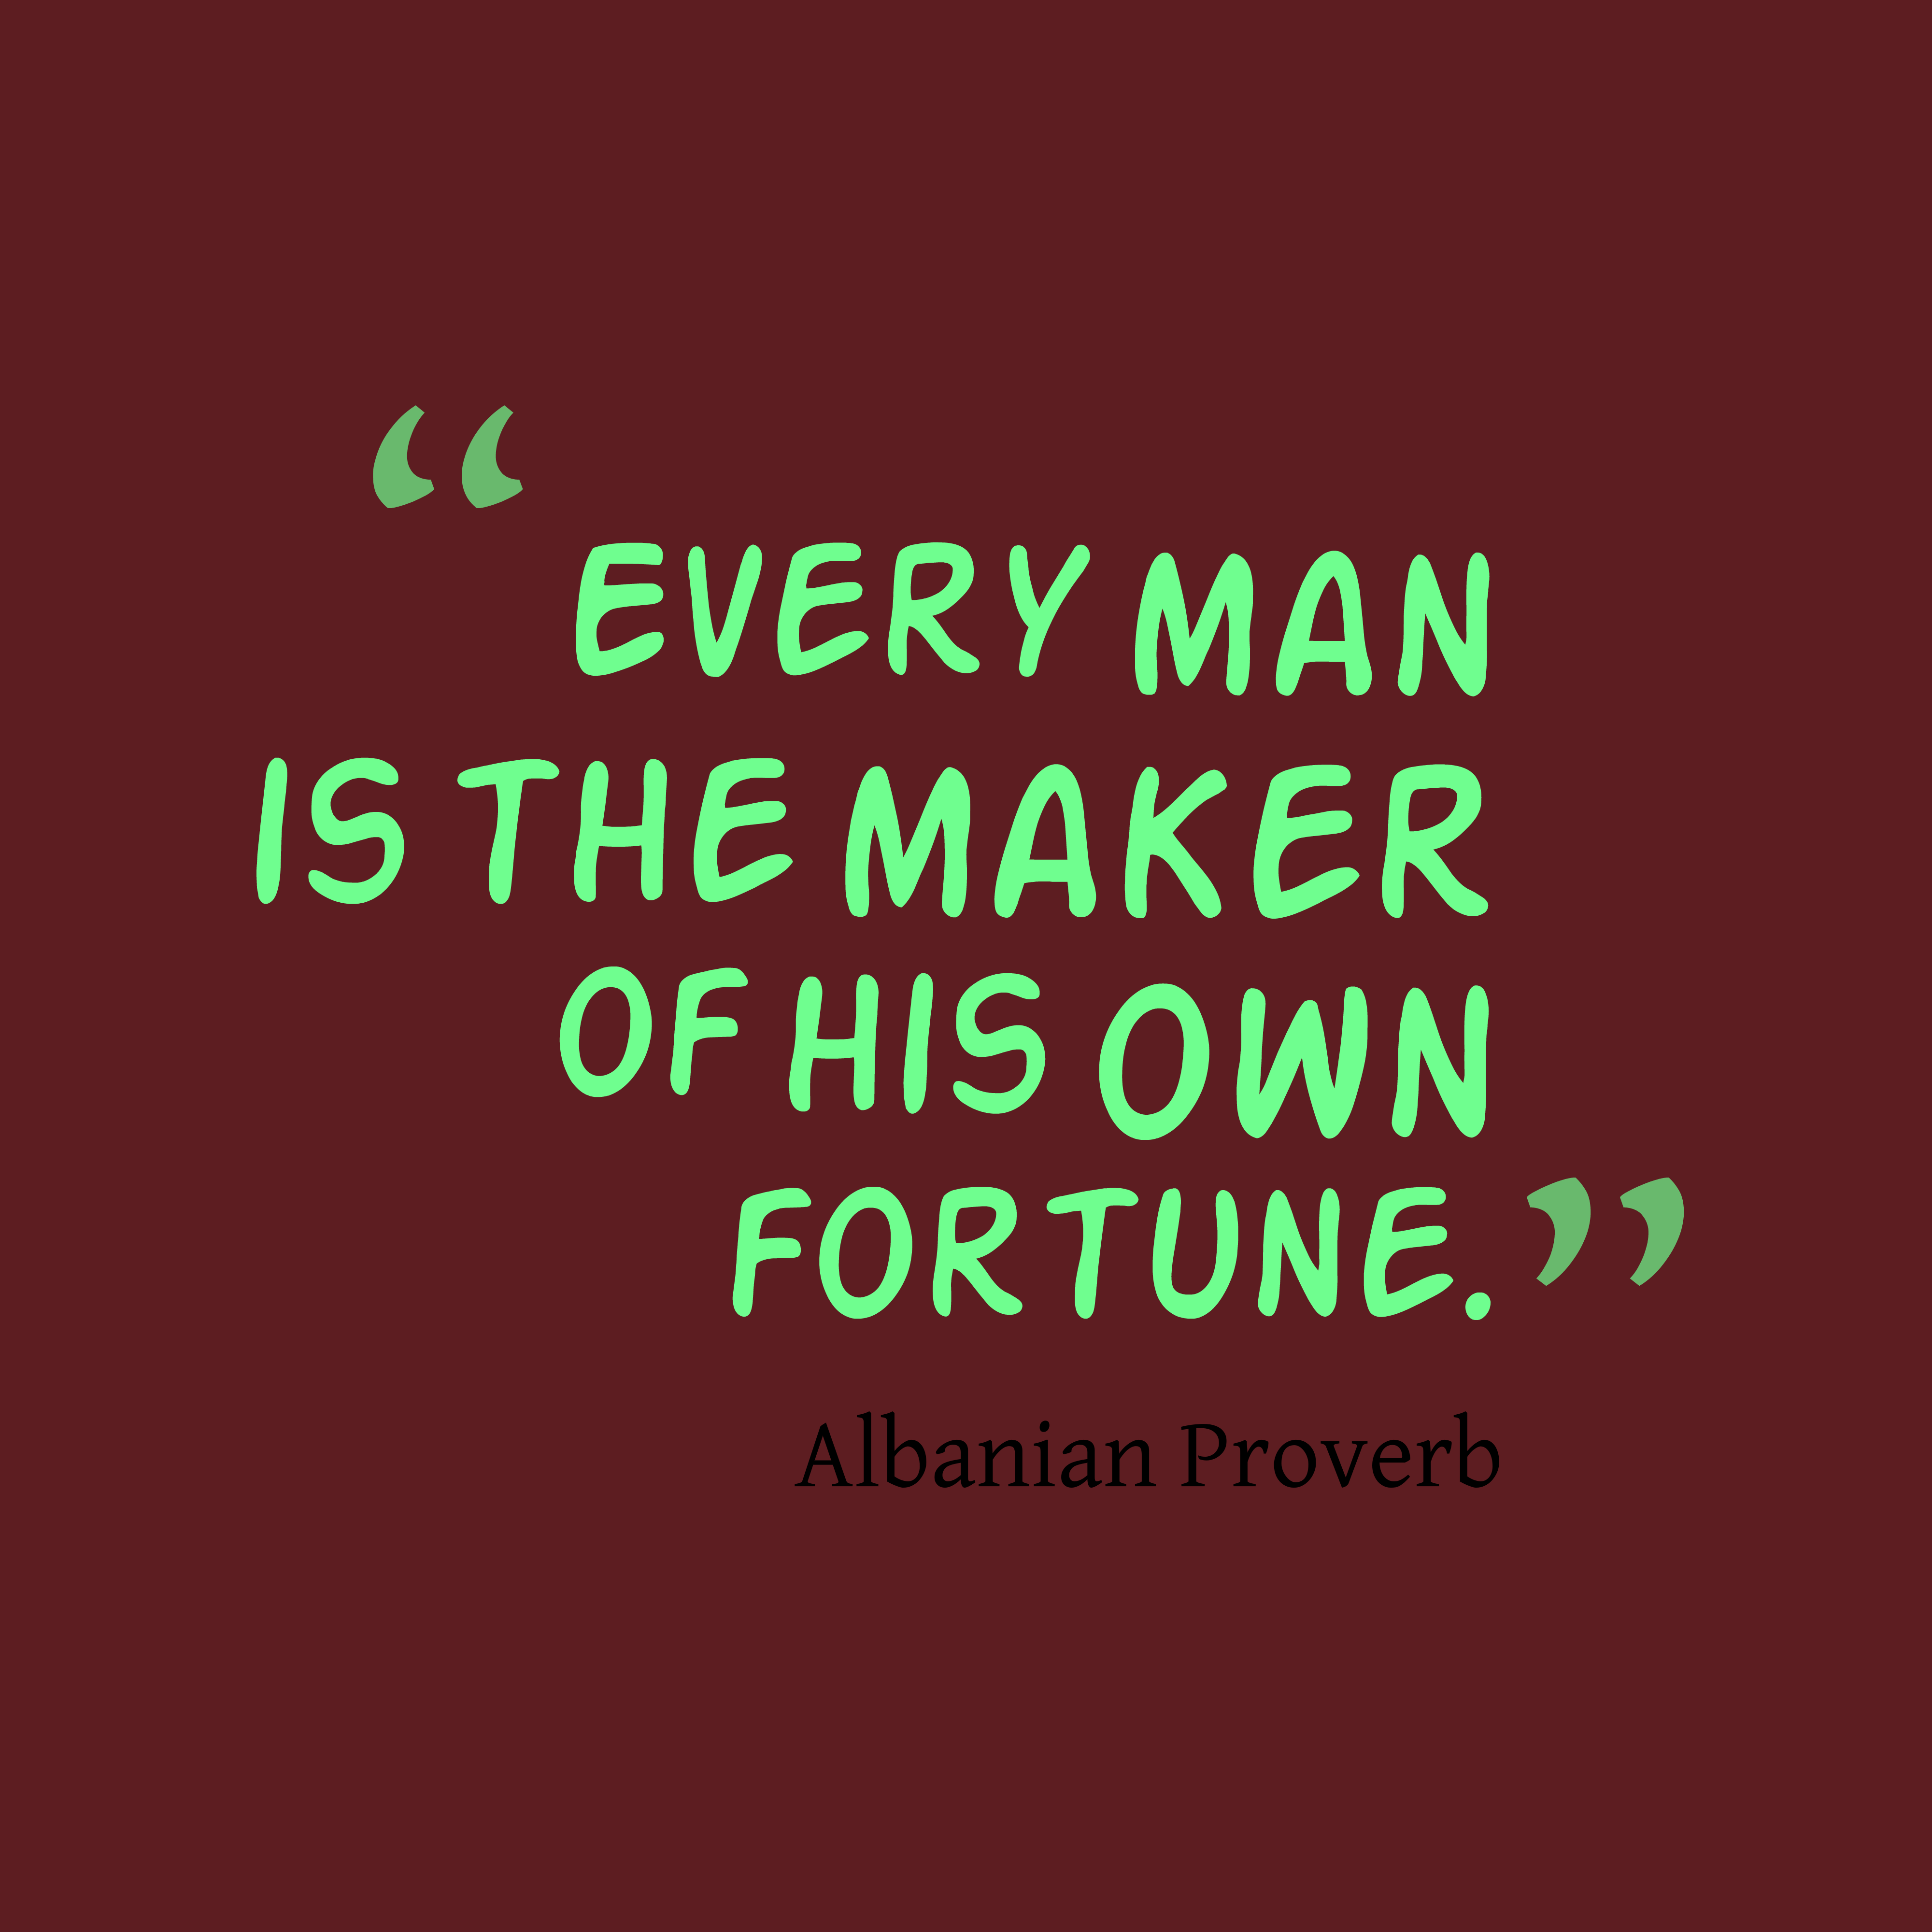 Quote Maker: Albanian Wisdom About Fortune